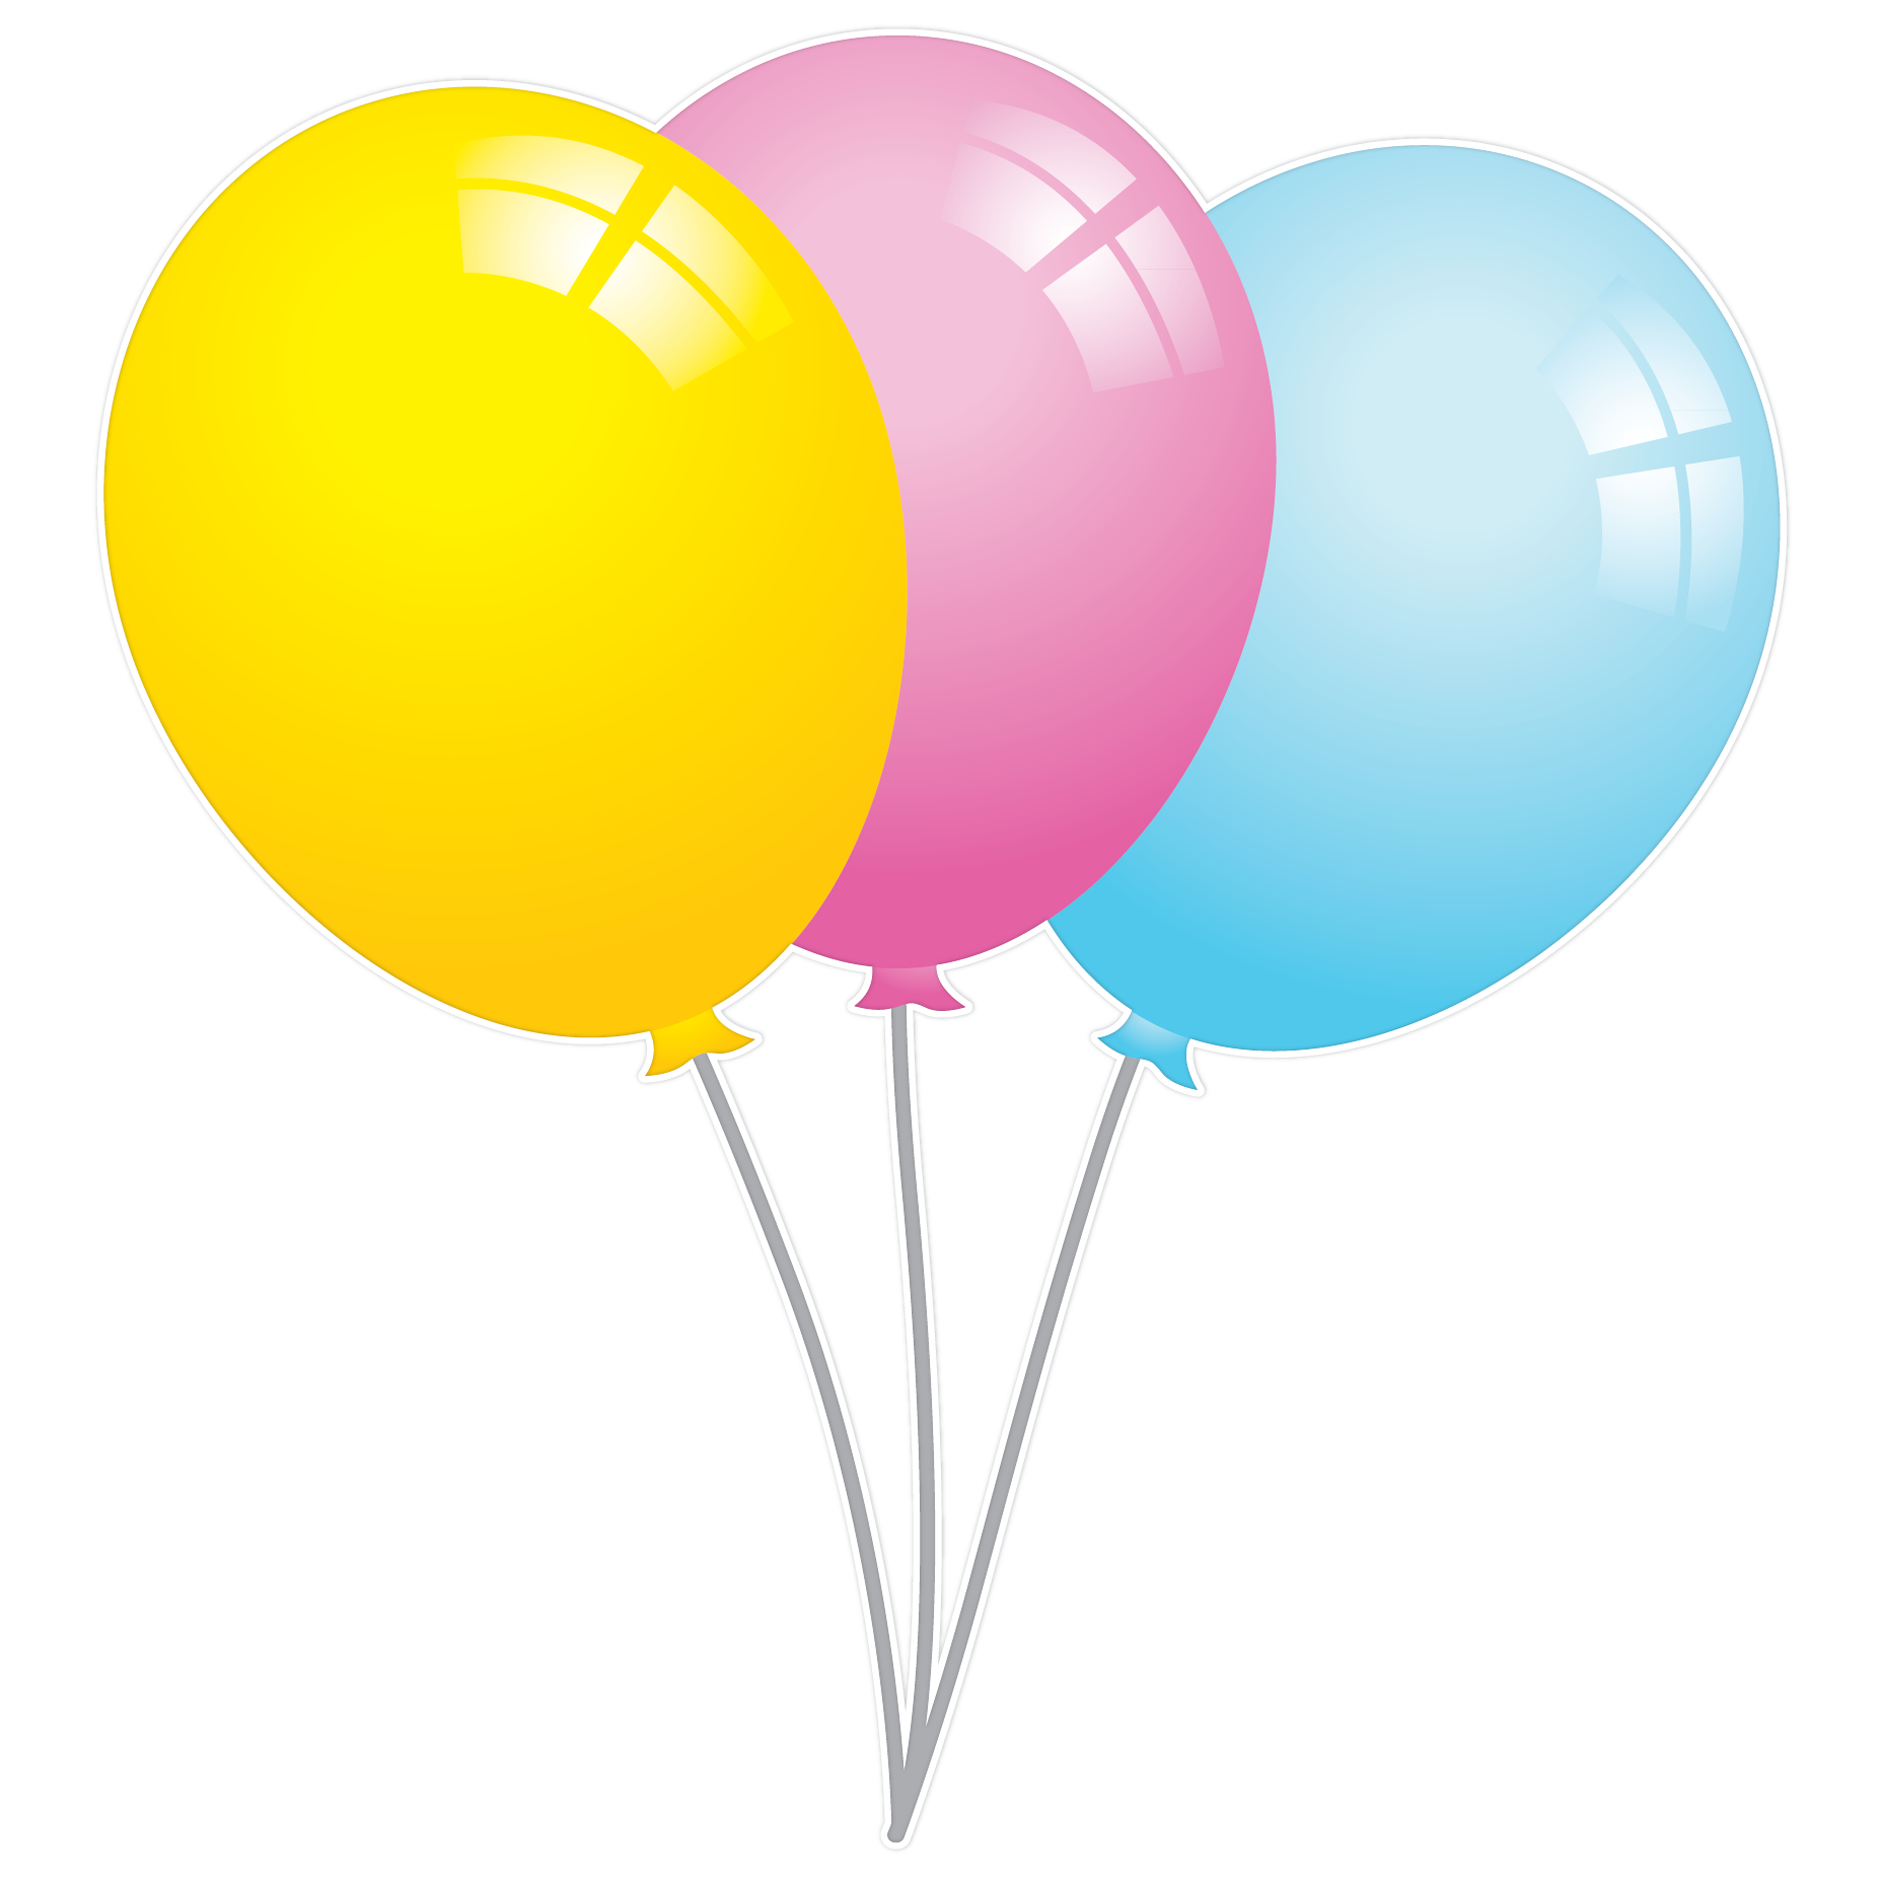 Balloons Clipart No Background All About Clipart